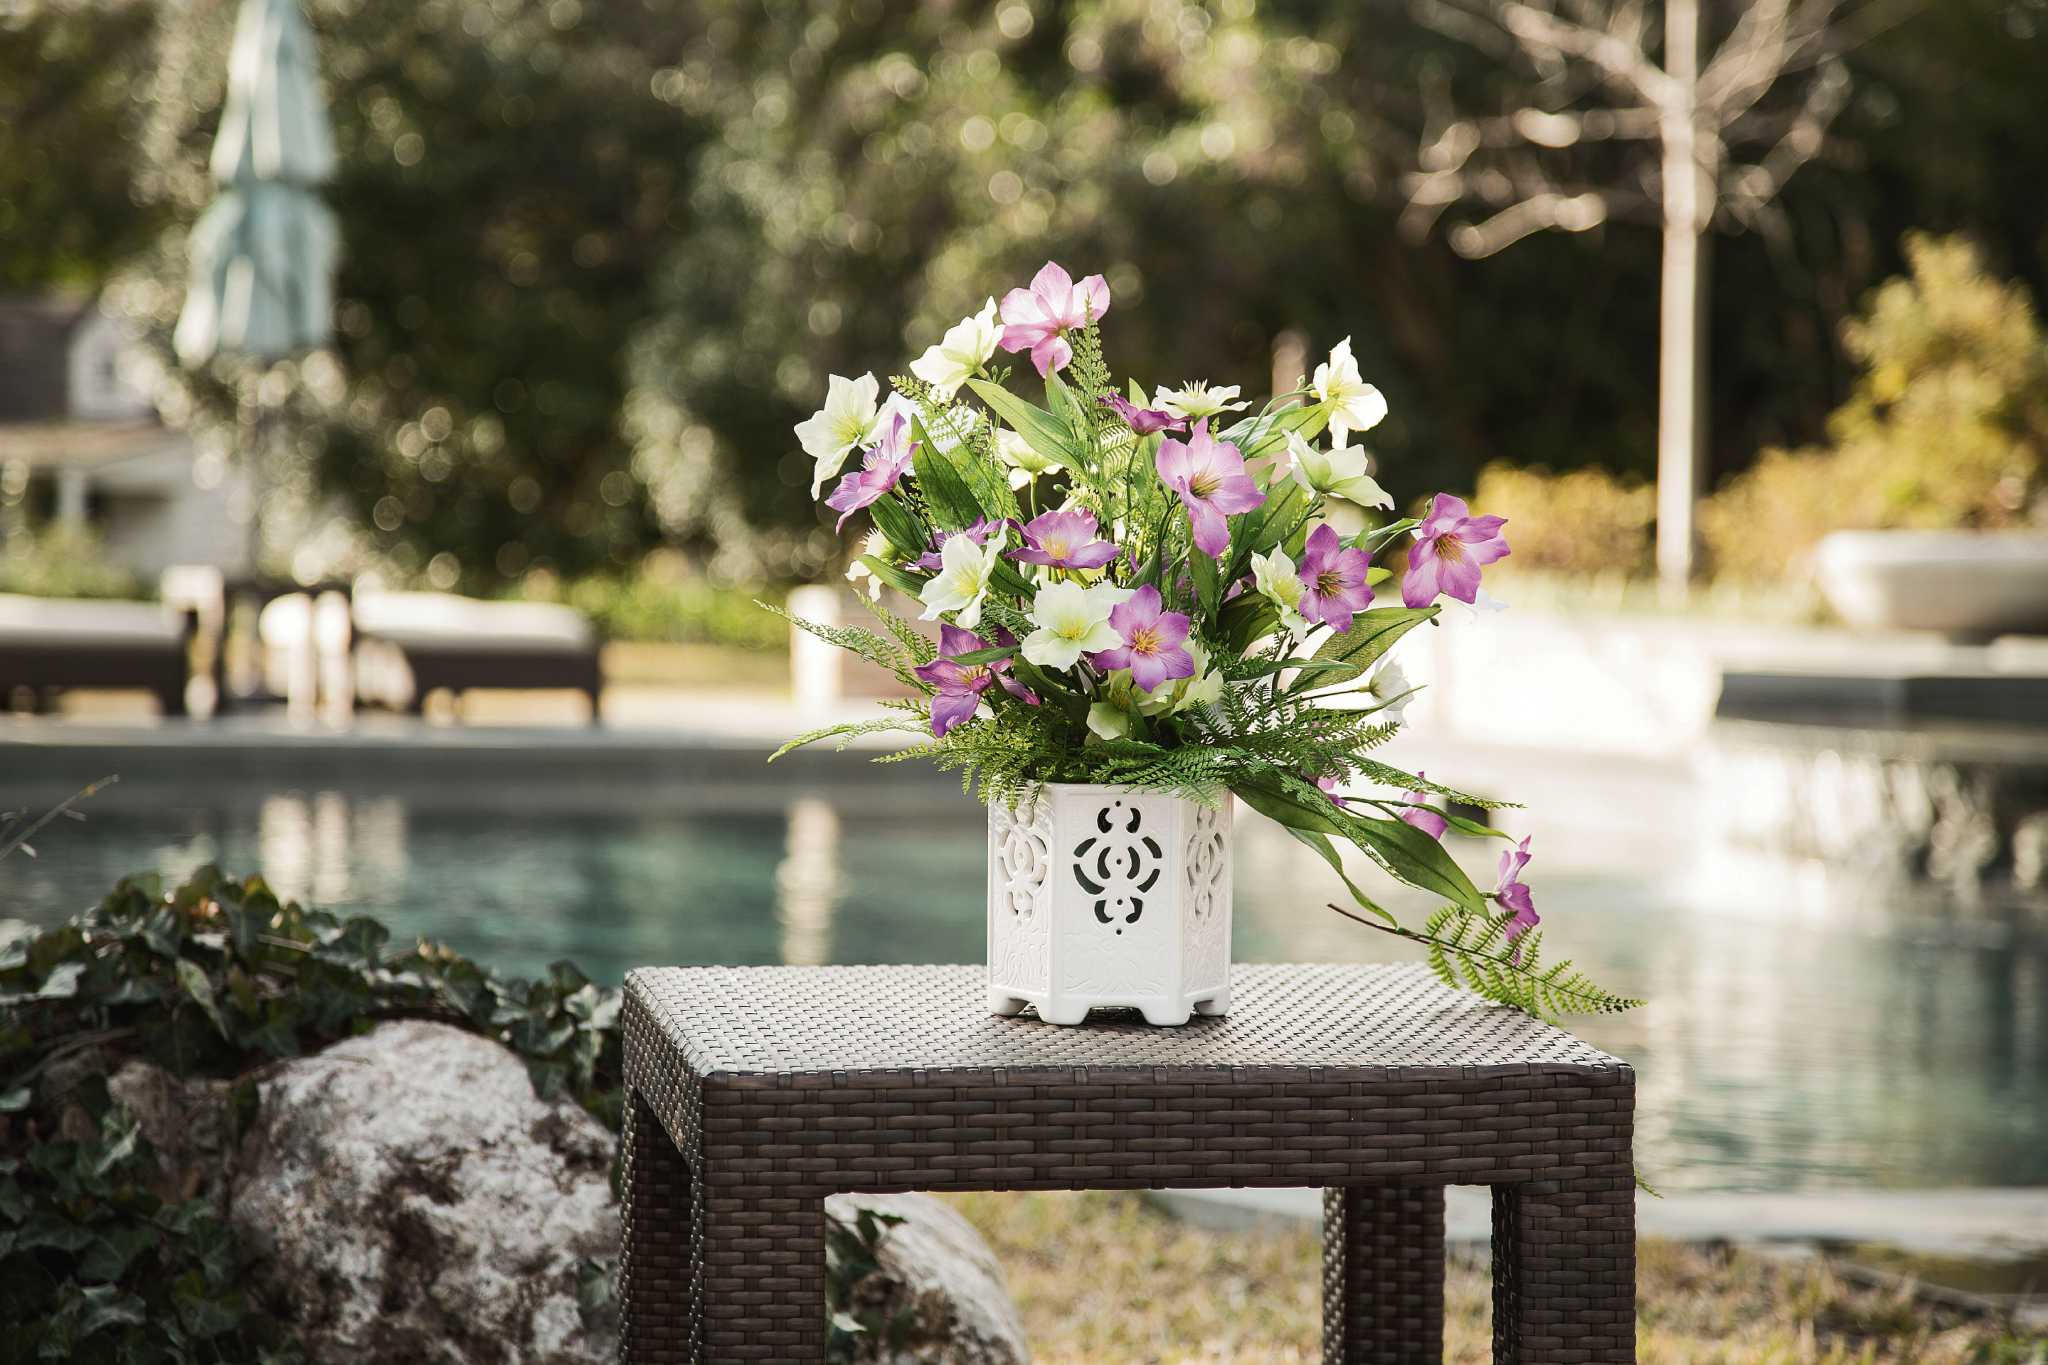 Faux Flowers And Plants Can Liven Up Home Houston Chronicle